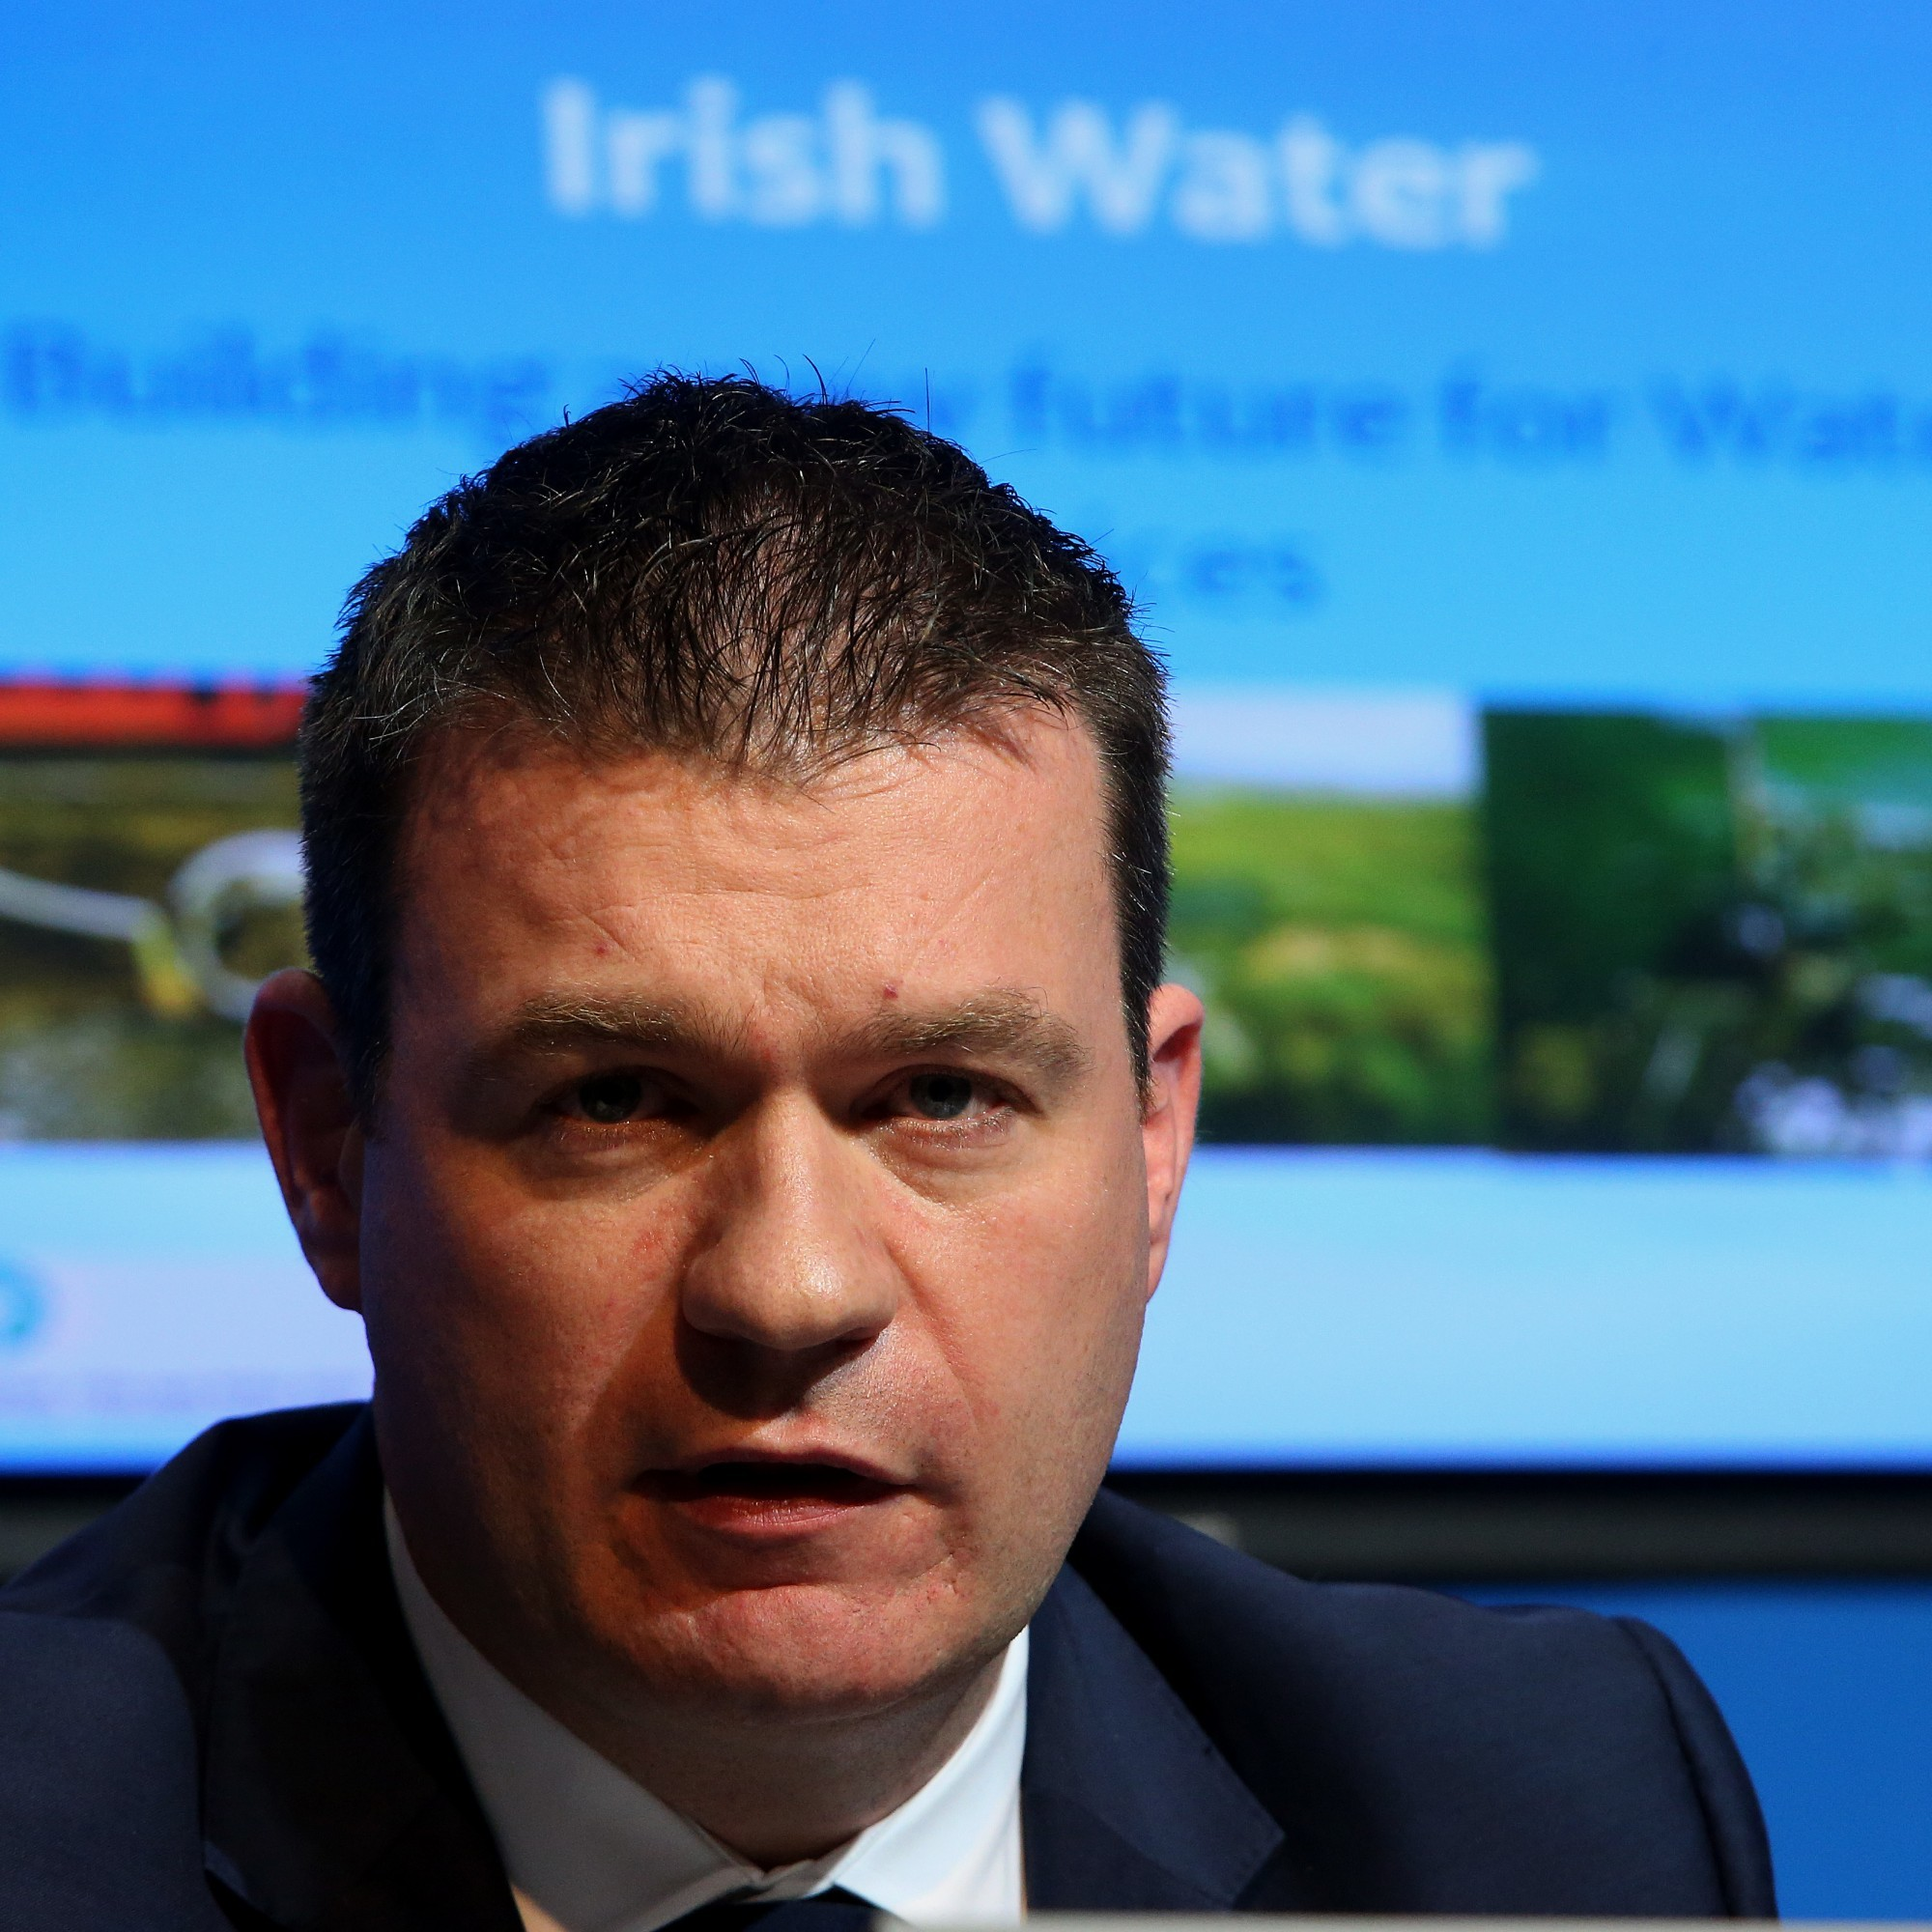 FactCheck: Is Alan Kelly right to say 80% of people are paying for water?